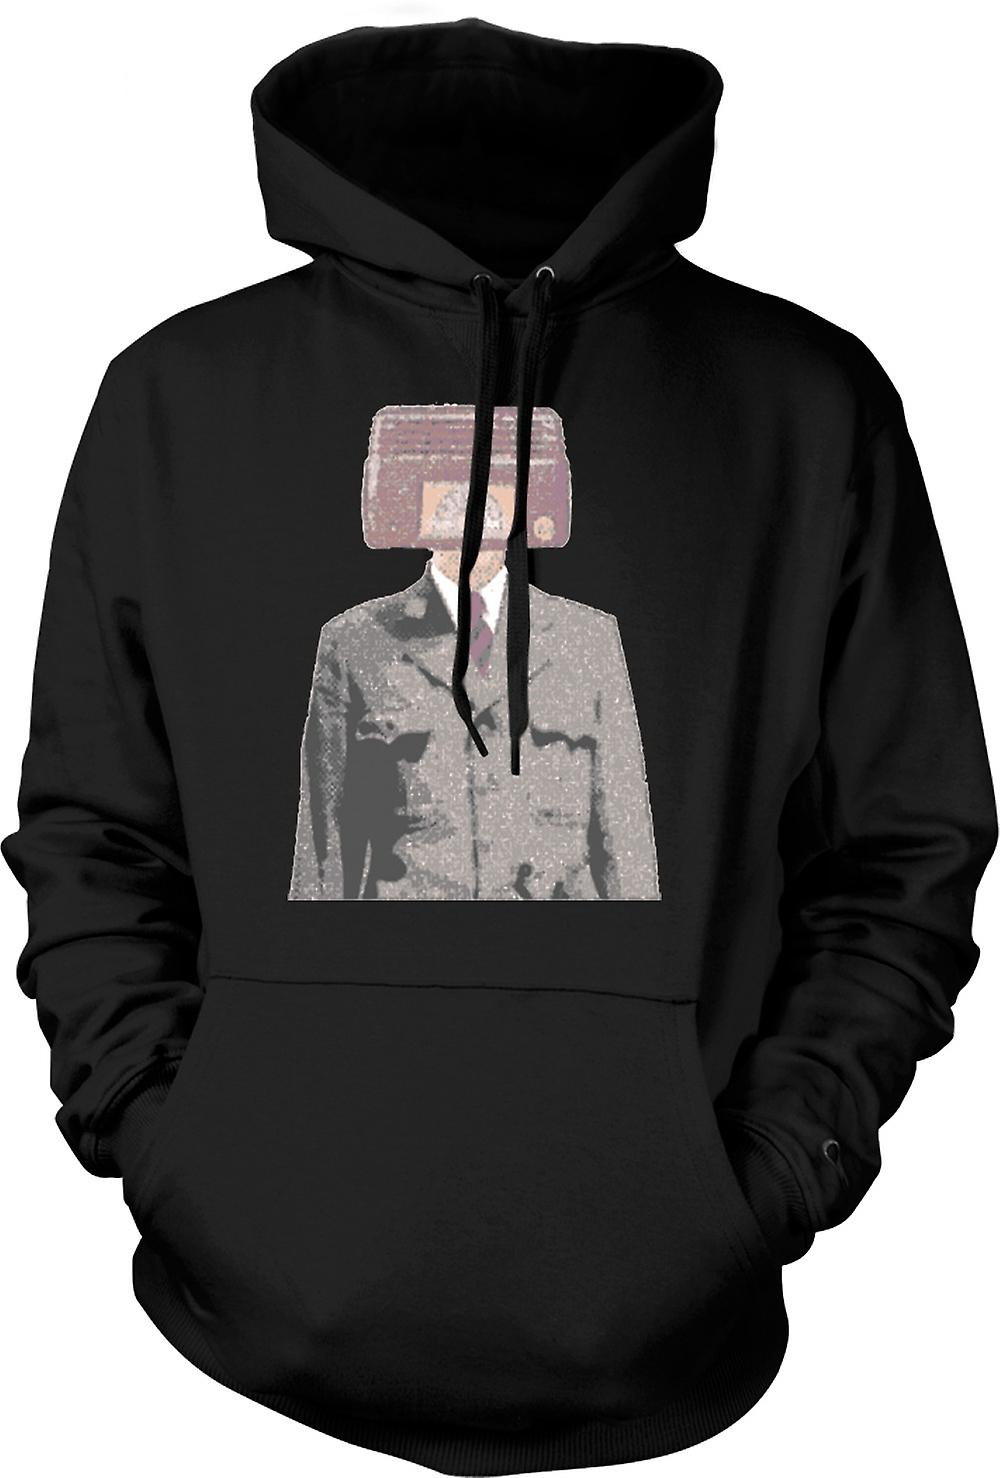 Enfant Sweat Capuche - Radiohead - Pop Art - Conception